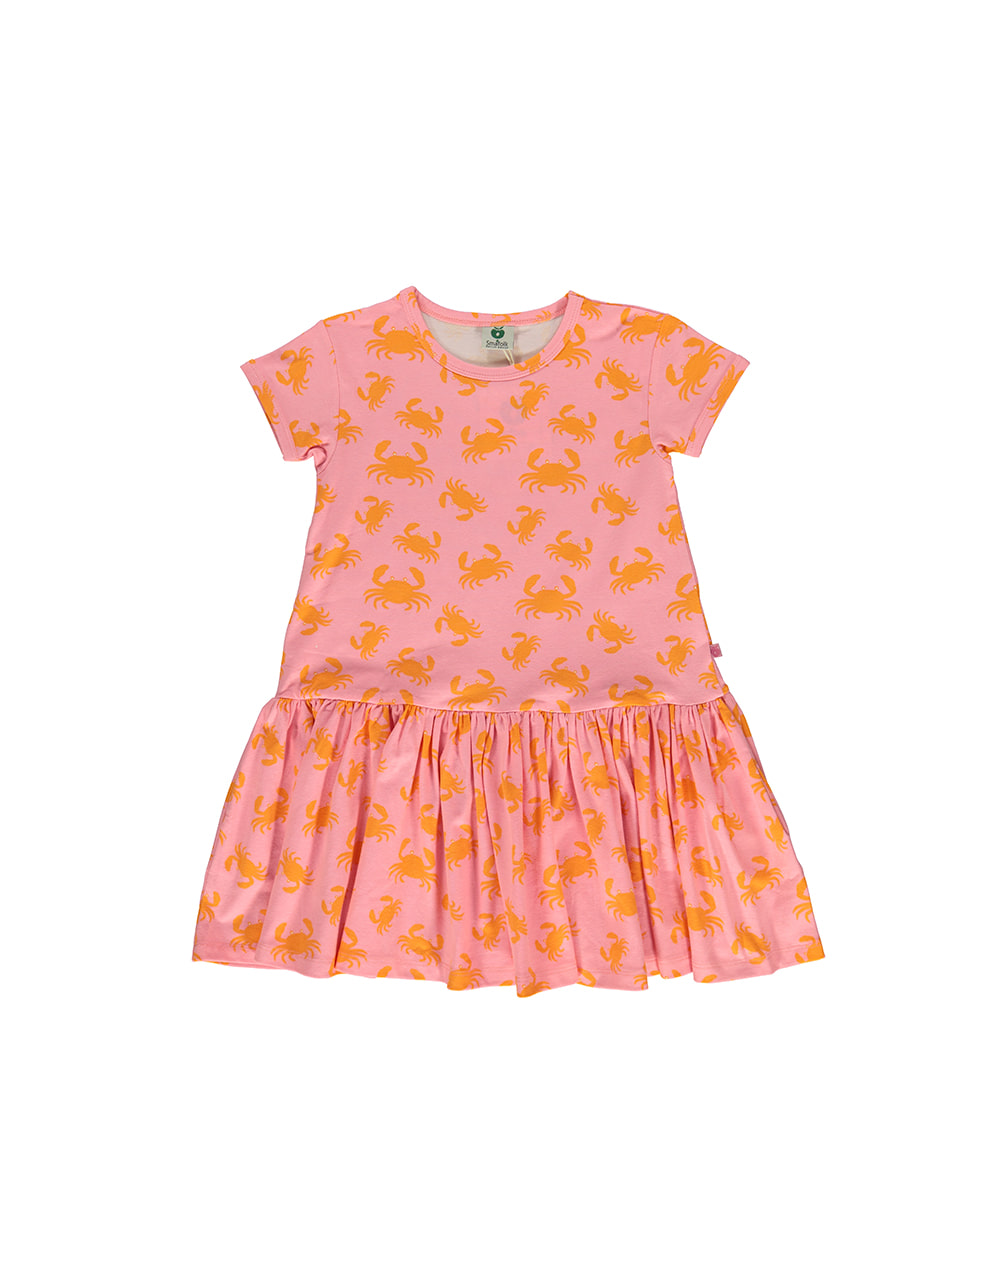 SMAFOLK  Dress with Crabs  Sea pink